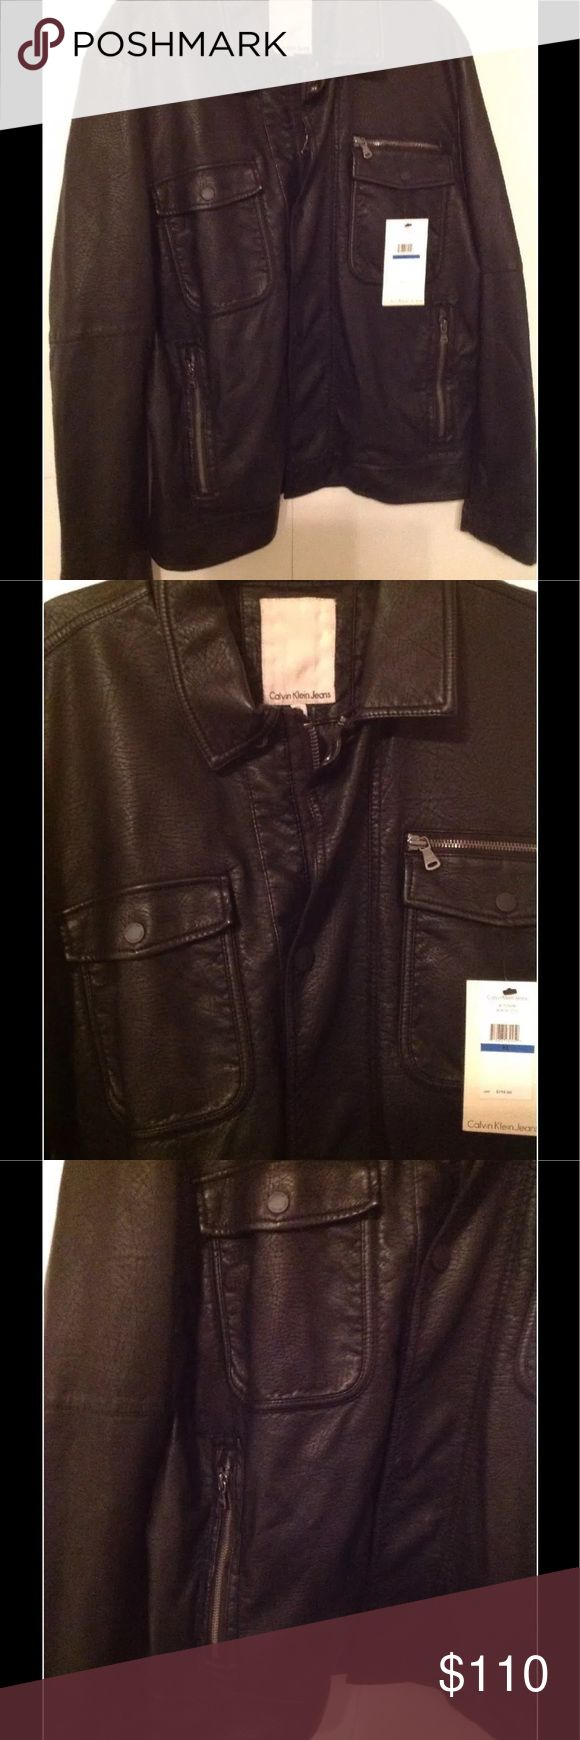 "NWT Calvin Klein Black Faux Leather Moto Coat! XL Awesome Men's Faux Leather Moto Bomber Jacket in Black with Pewter Hardware!  Brand New with Tags! Original Price $198   Adult Mens size XL -- Measurements  **Measurements: Width = Underarm to Underarm 24"" Length = Back of Neck/Collar to Bottom Waist Hem 26""  Lots of pockets. Excellent full front zipper and metal snaps for closure.  This will look great on someone...Enjoy! Think You or Awesome Christmas gift!!! Calvin Klein Jackets & Coats"